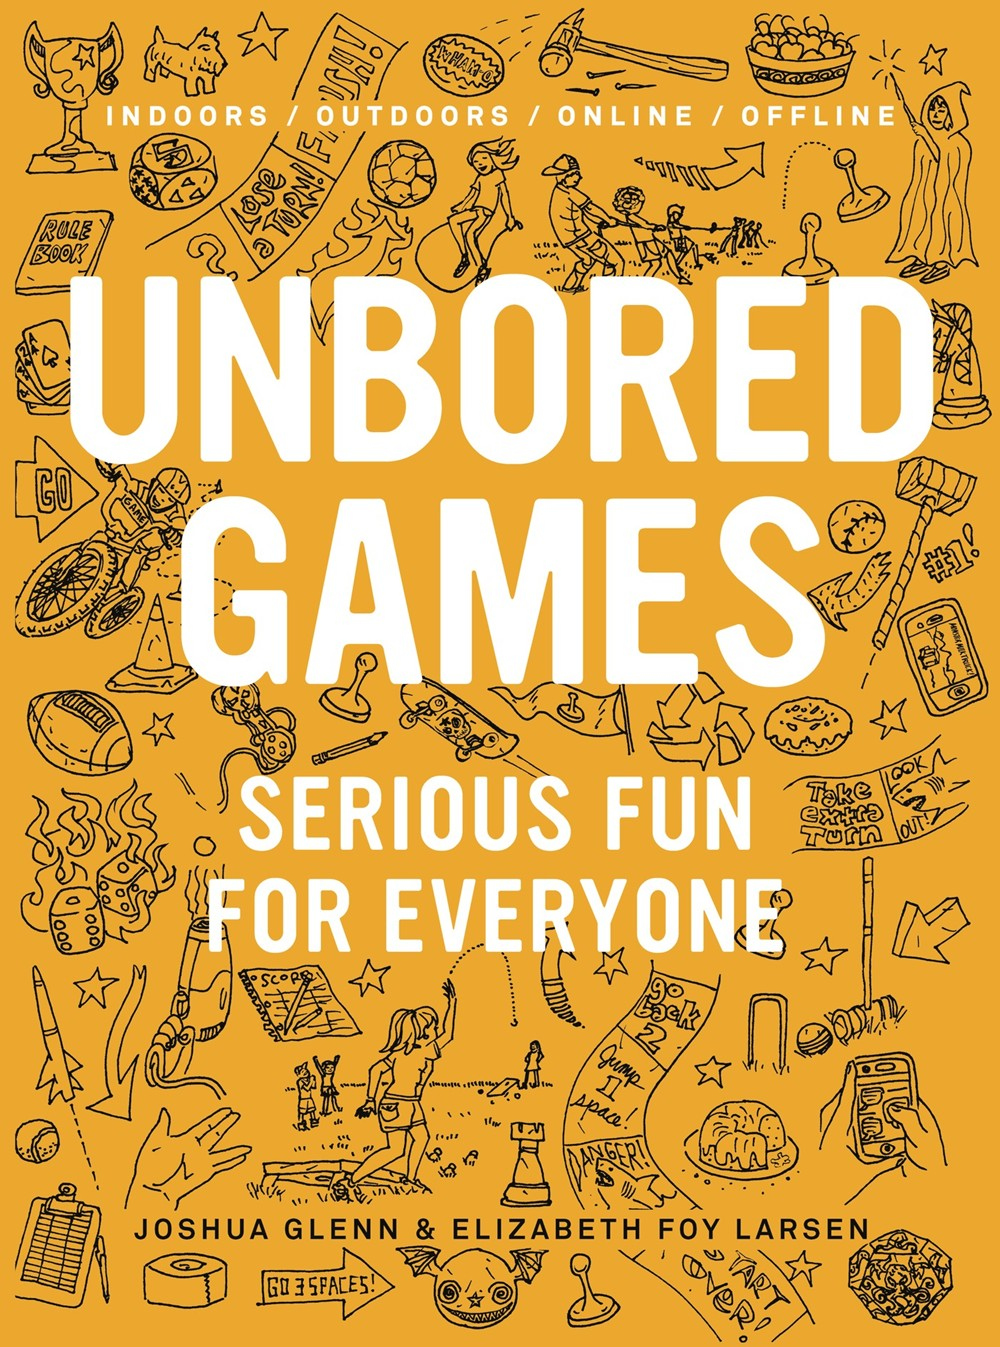 Family Event: UNBORED Games by Joshua Glenn & Elizabeth Foy Larsen